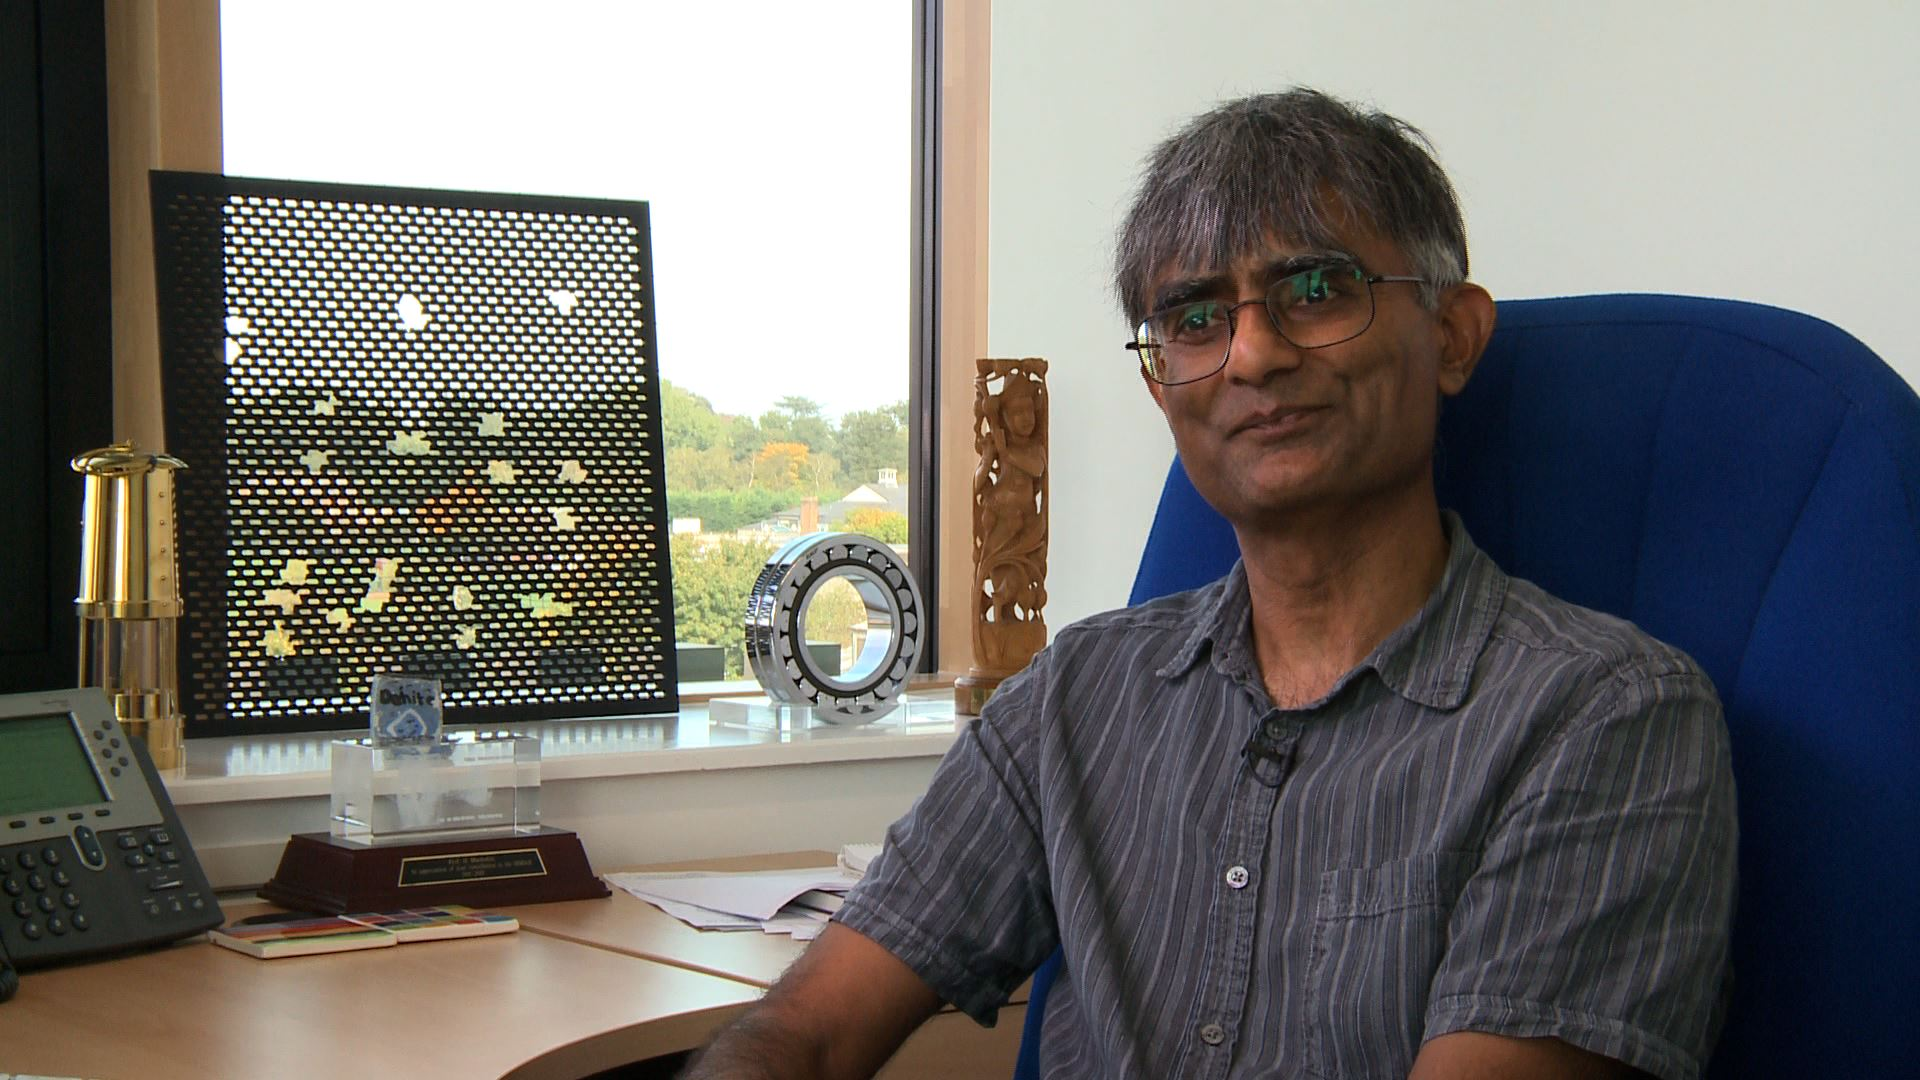 Harry Bhadeshia FRS in his office in the Department of Materials Science and Metallurgy, University of Cambridge.